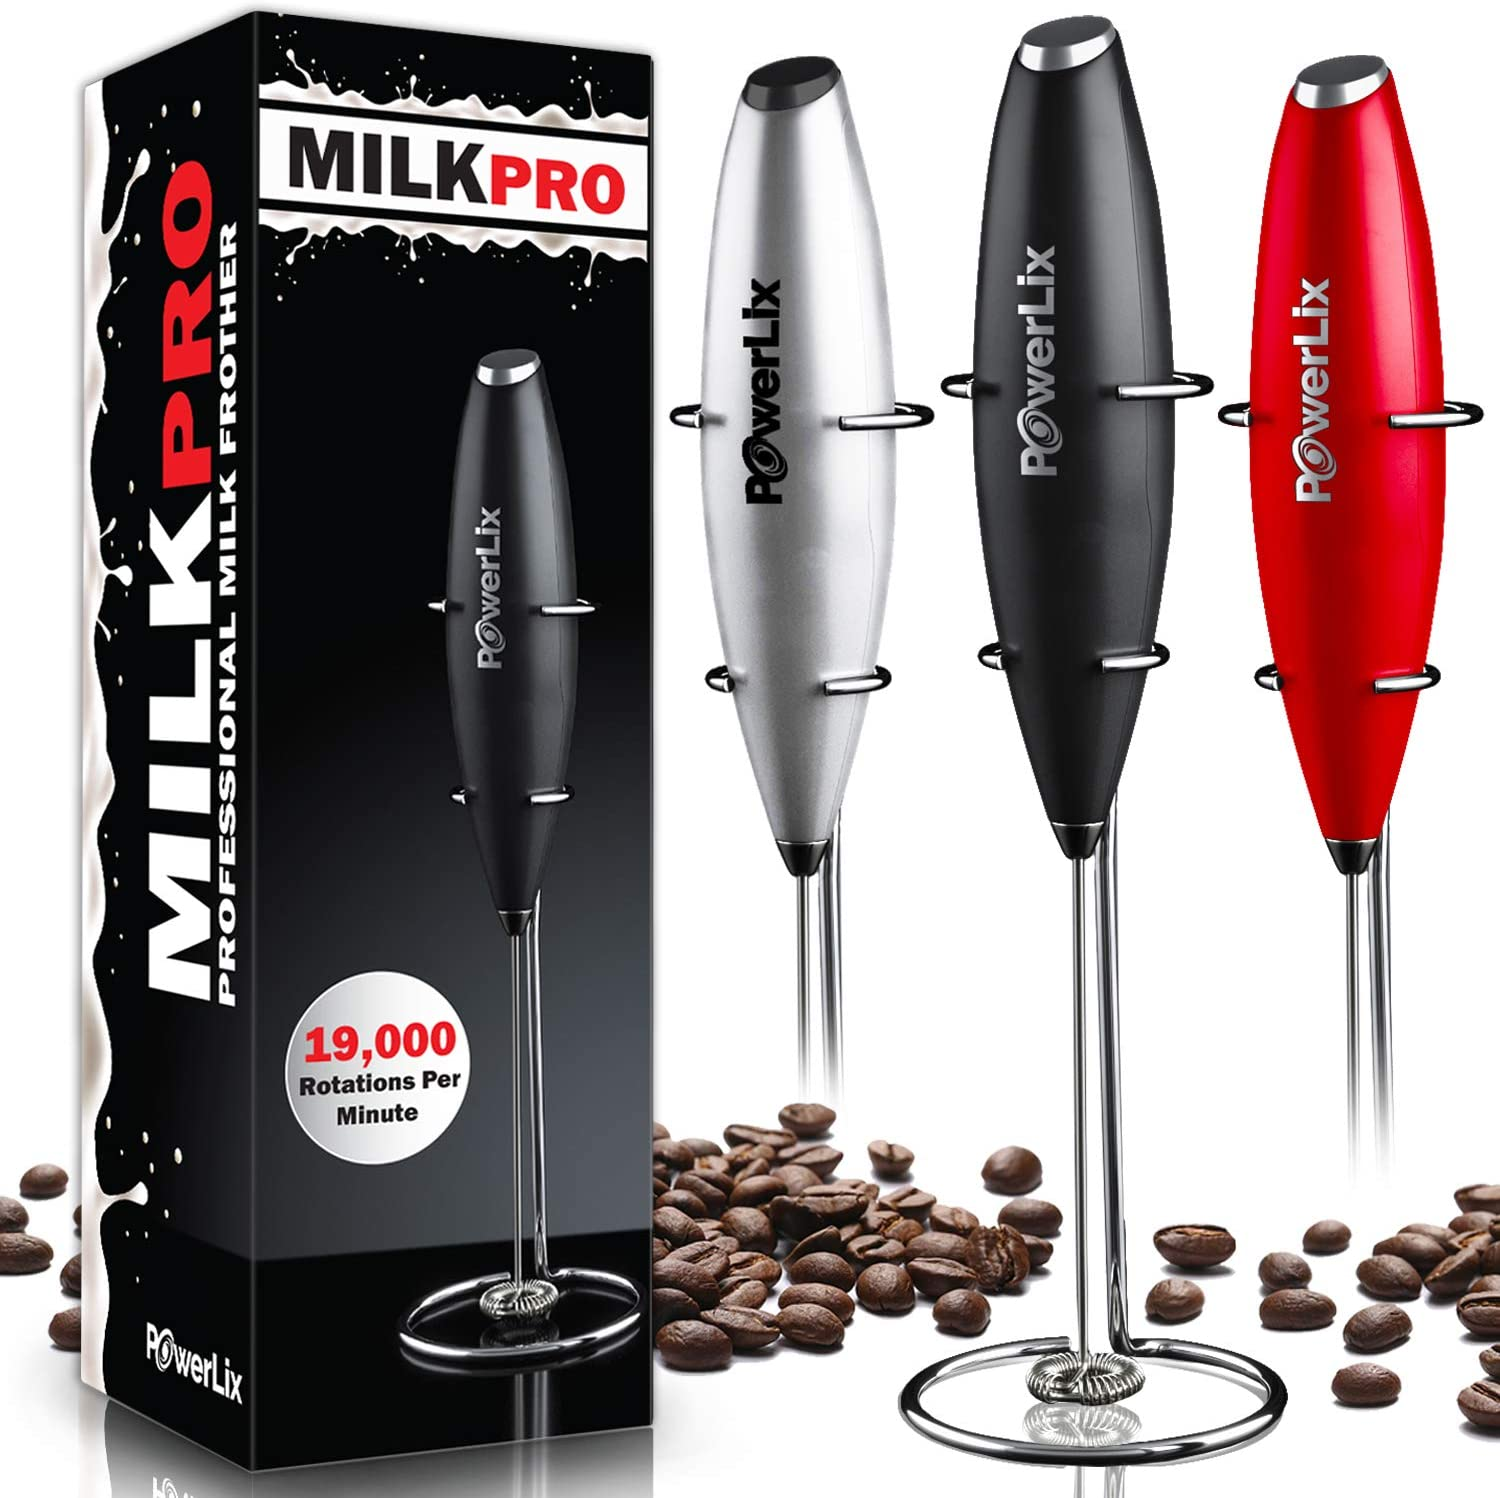 Stand Not Included Matcha /& More Double Grip Milk Frother Handheld Coffee Frother Electric Handheld Foam Maker - Silver Milk Boss Batteries Included Frother For Coffee Electric Whisk Latte